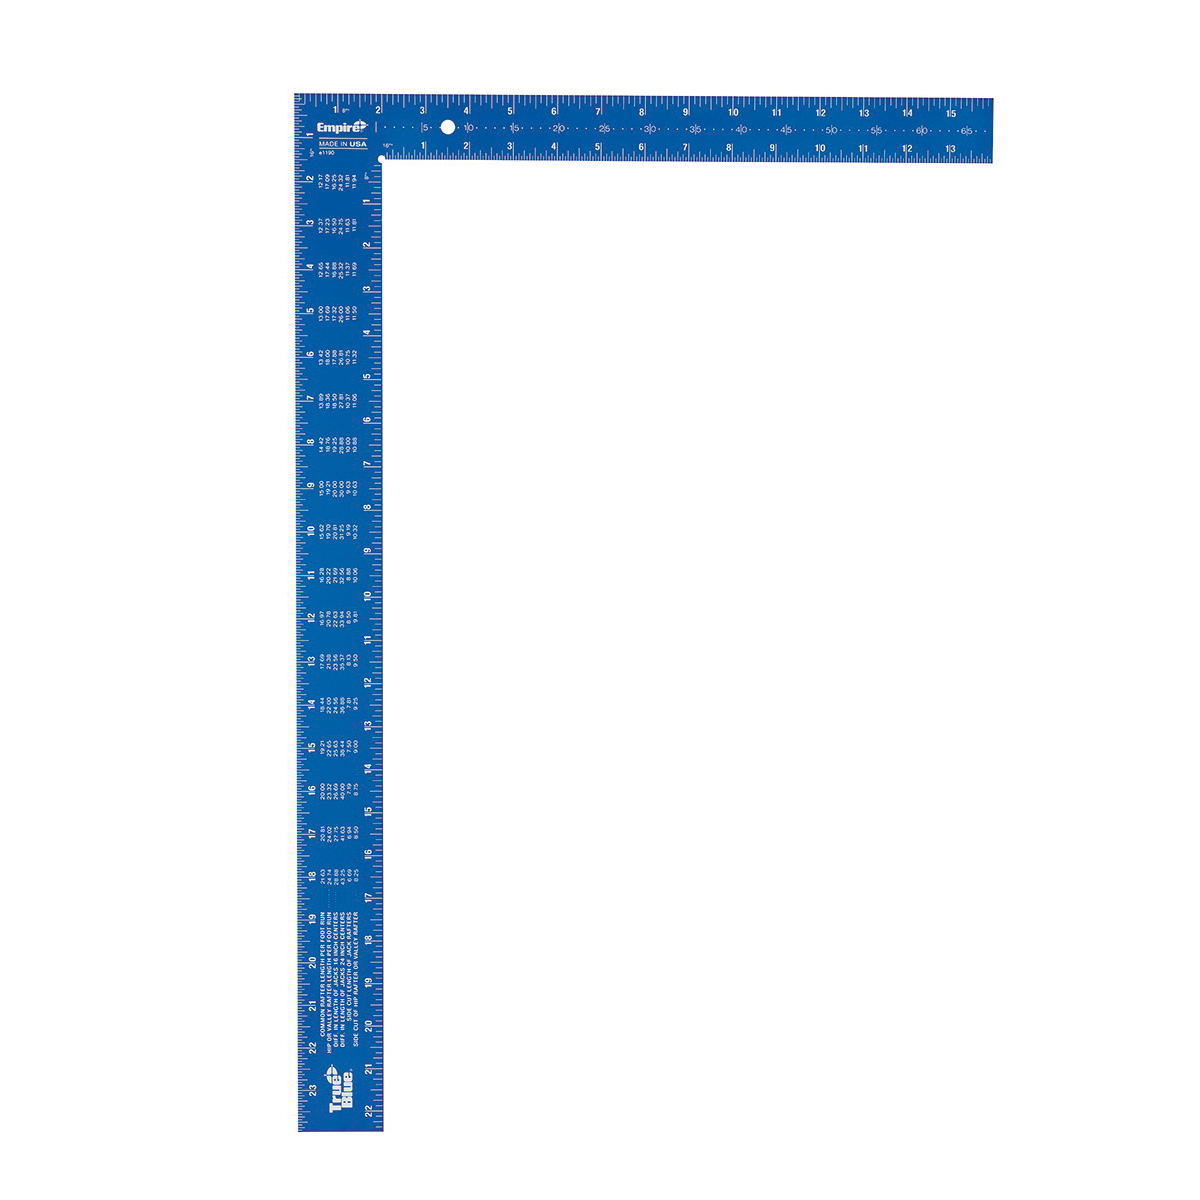 Empire® TRUE BLUE® 1190 Laser Etched Framing Square, 24 in L Blade/16 in L Beam, 1/8 in, 1/10 in, 1/12 in, 1/16 in Graduation, 90 deg, 16 x 1-1/2 in Tongue, Aluminum